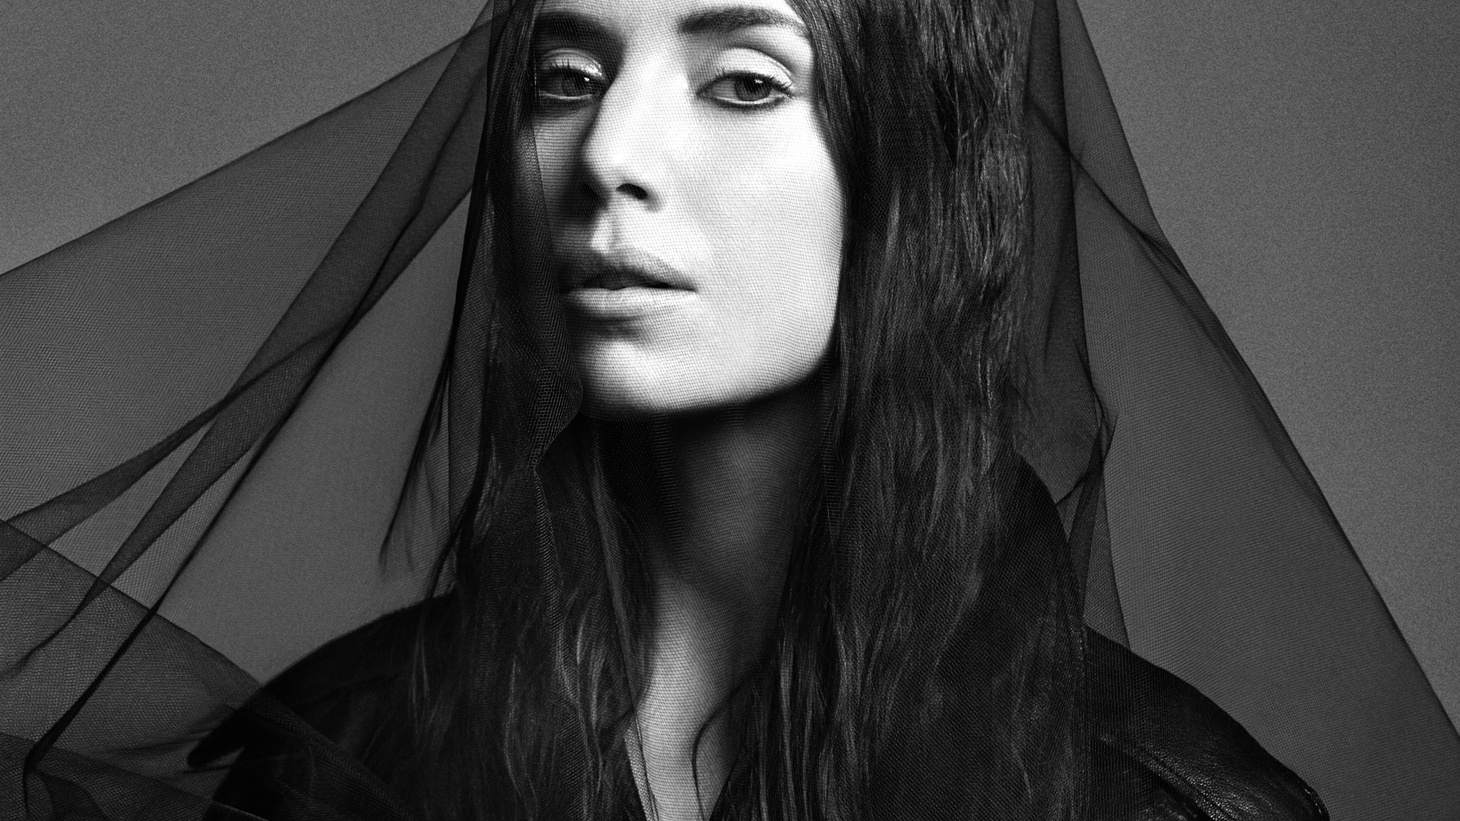 Swedish singer Lykke Li lets her heartache be her guide on her latest release. She doesn't shy away from sadness.